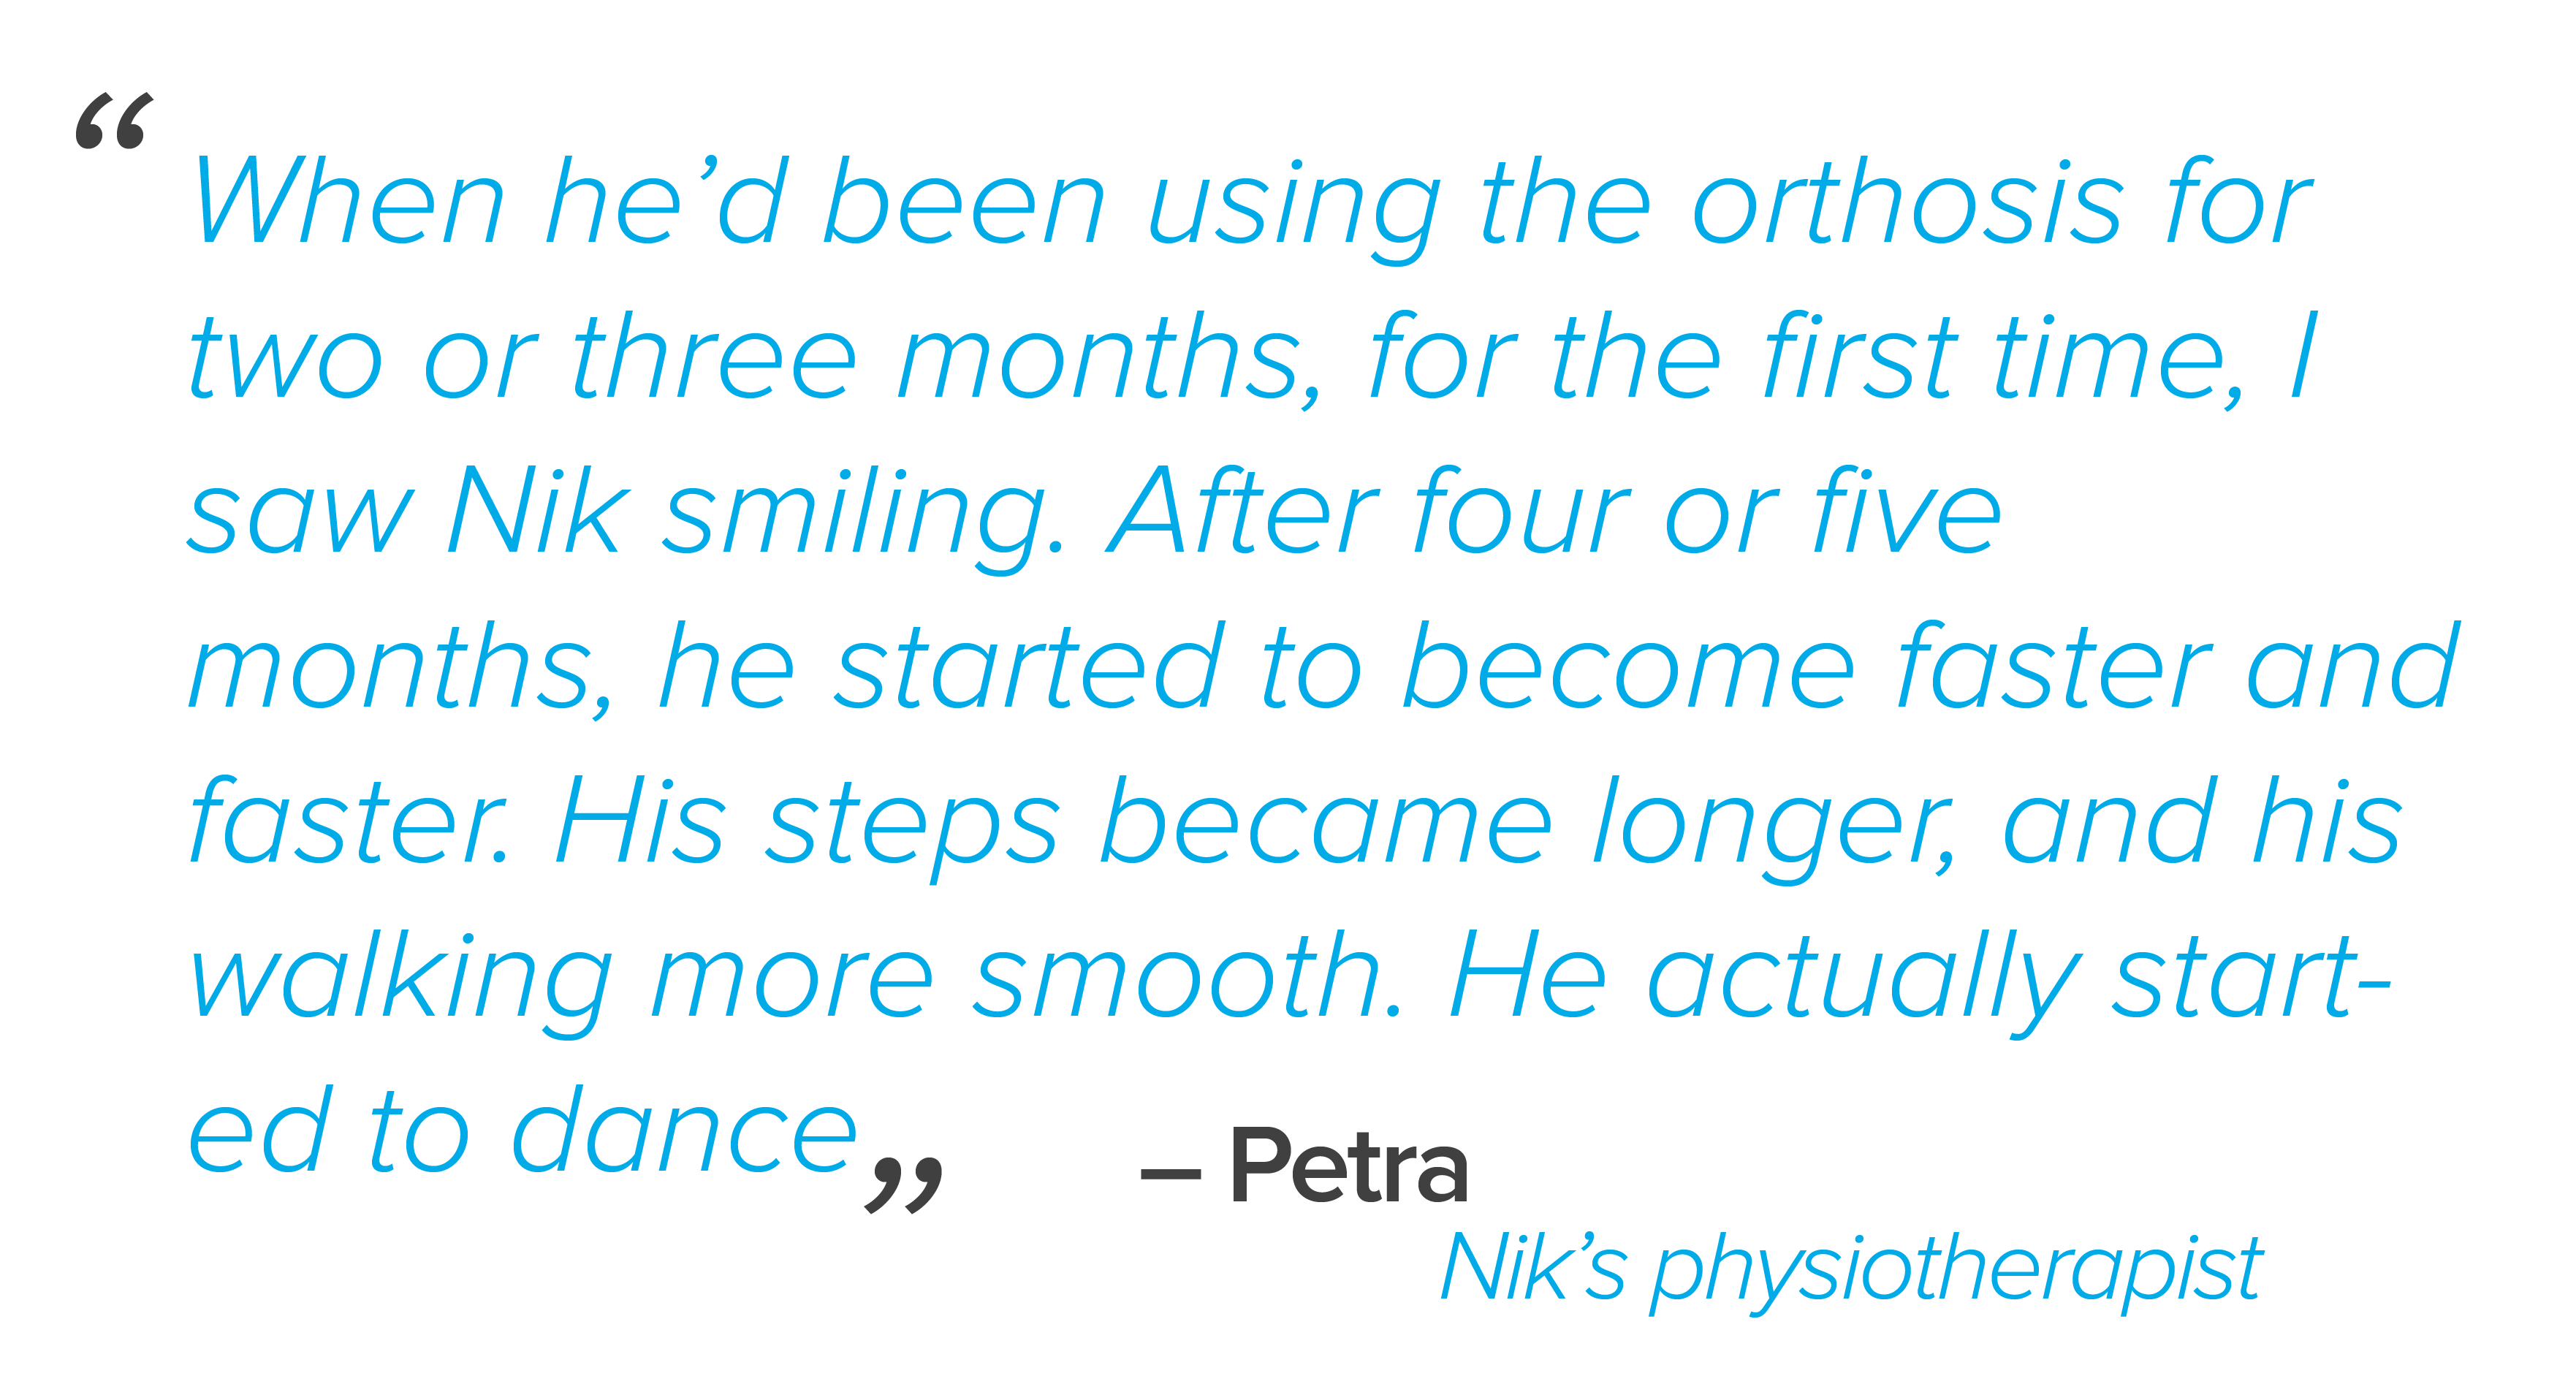 """When he'd been using the orthosis for two or three months, for the first time, I saw Nik smiling. After four or five months, he started to become faster and faster. His steps became longer, and his walking more smooth. He actually started to dance,"" said Petra."